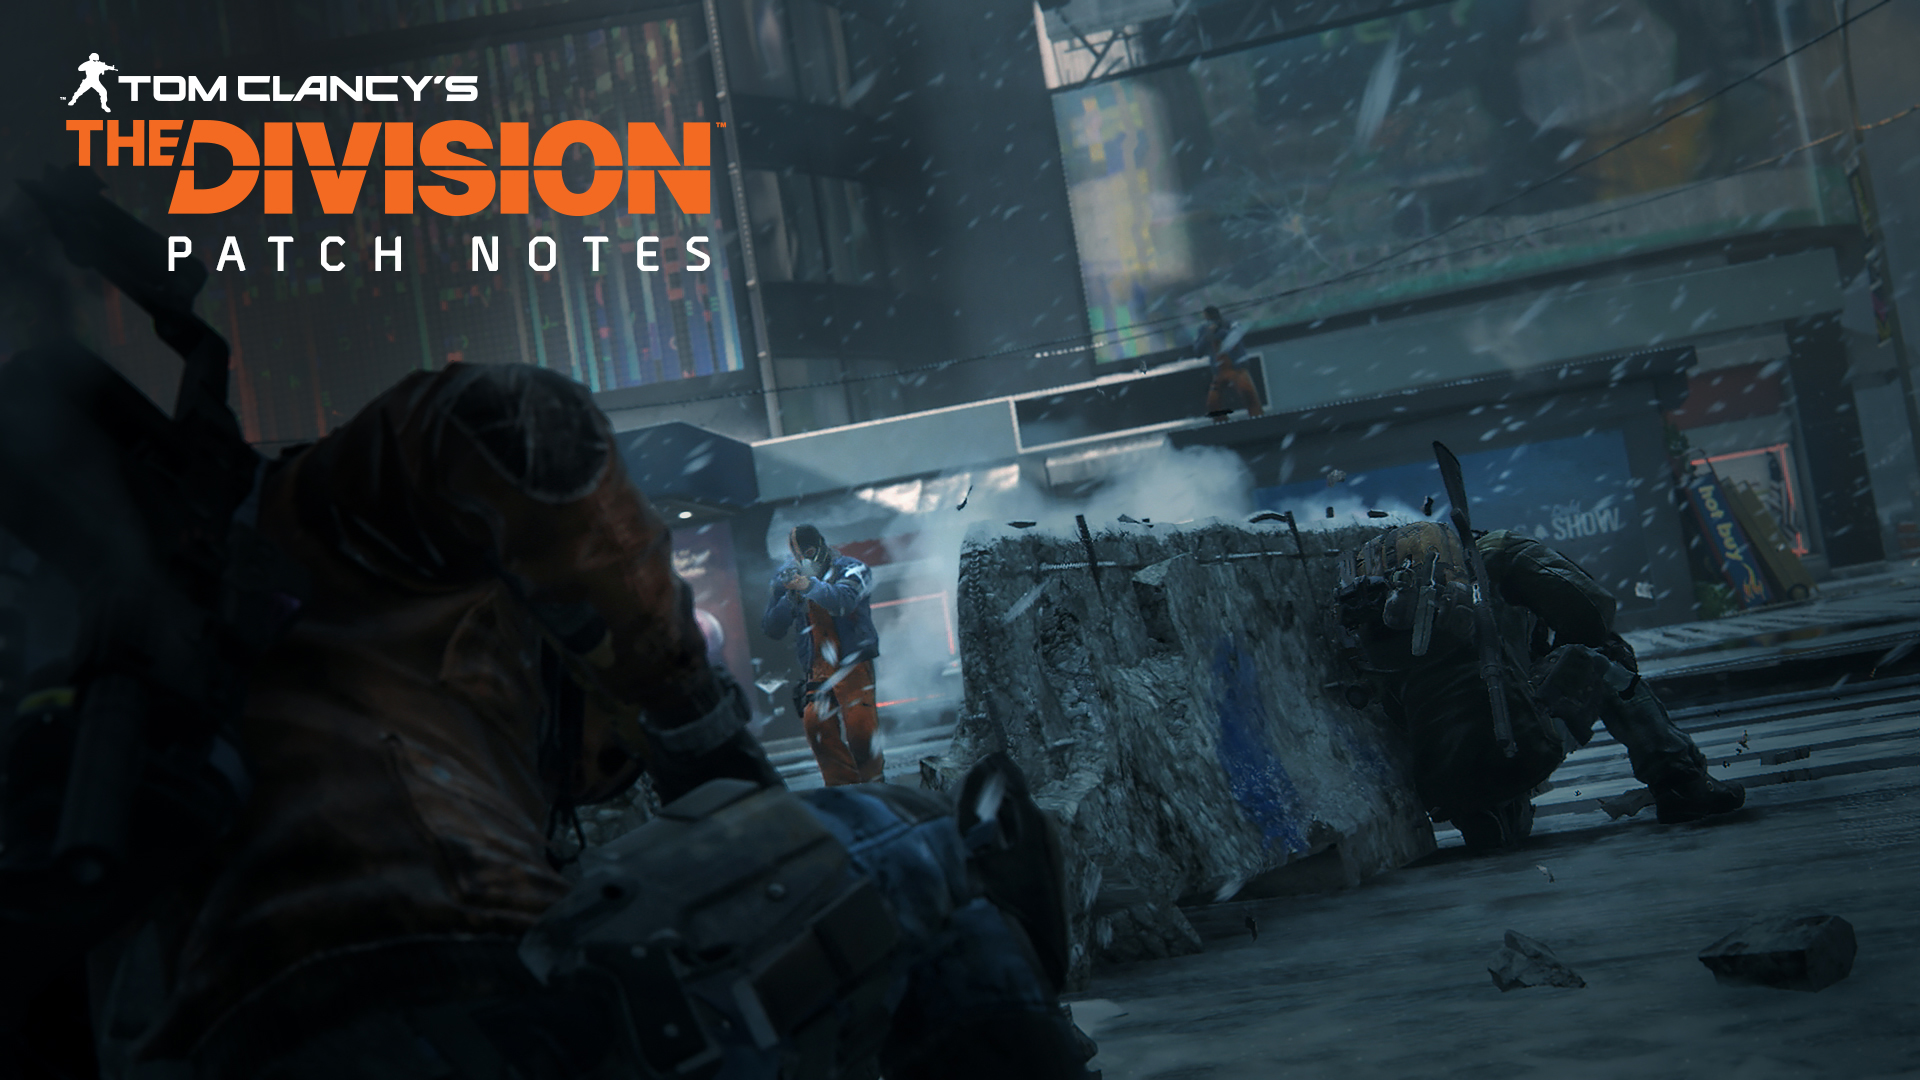 The divions patch notes pic